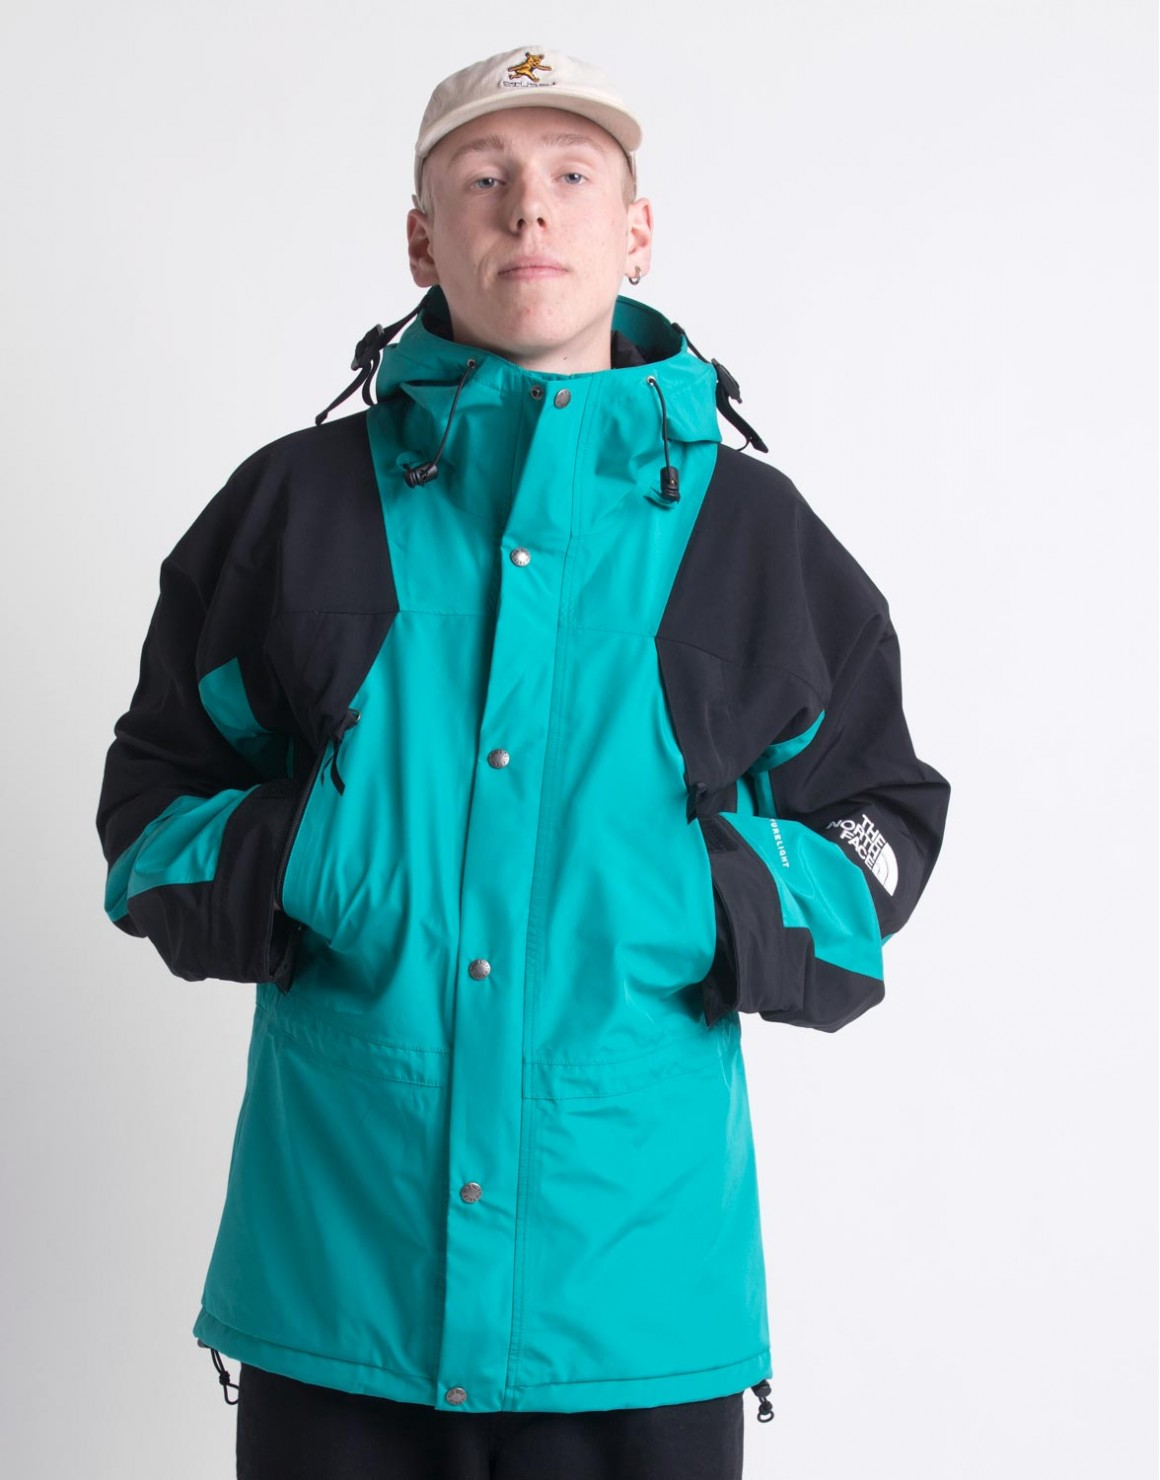 94 Retro Mountain Light Jacket